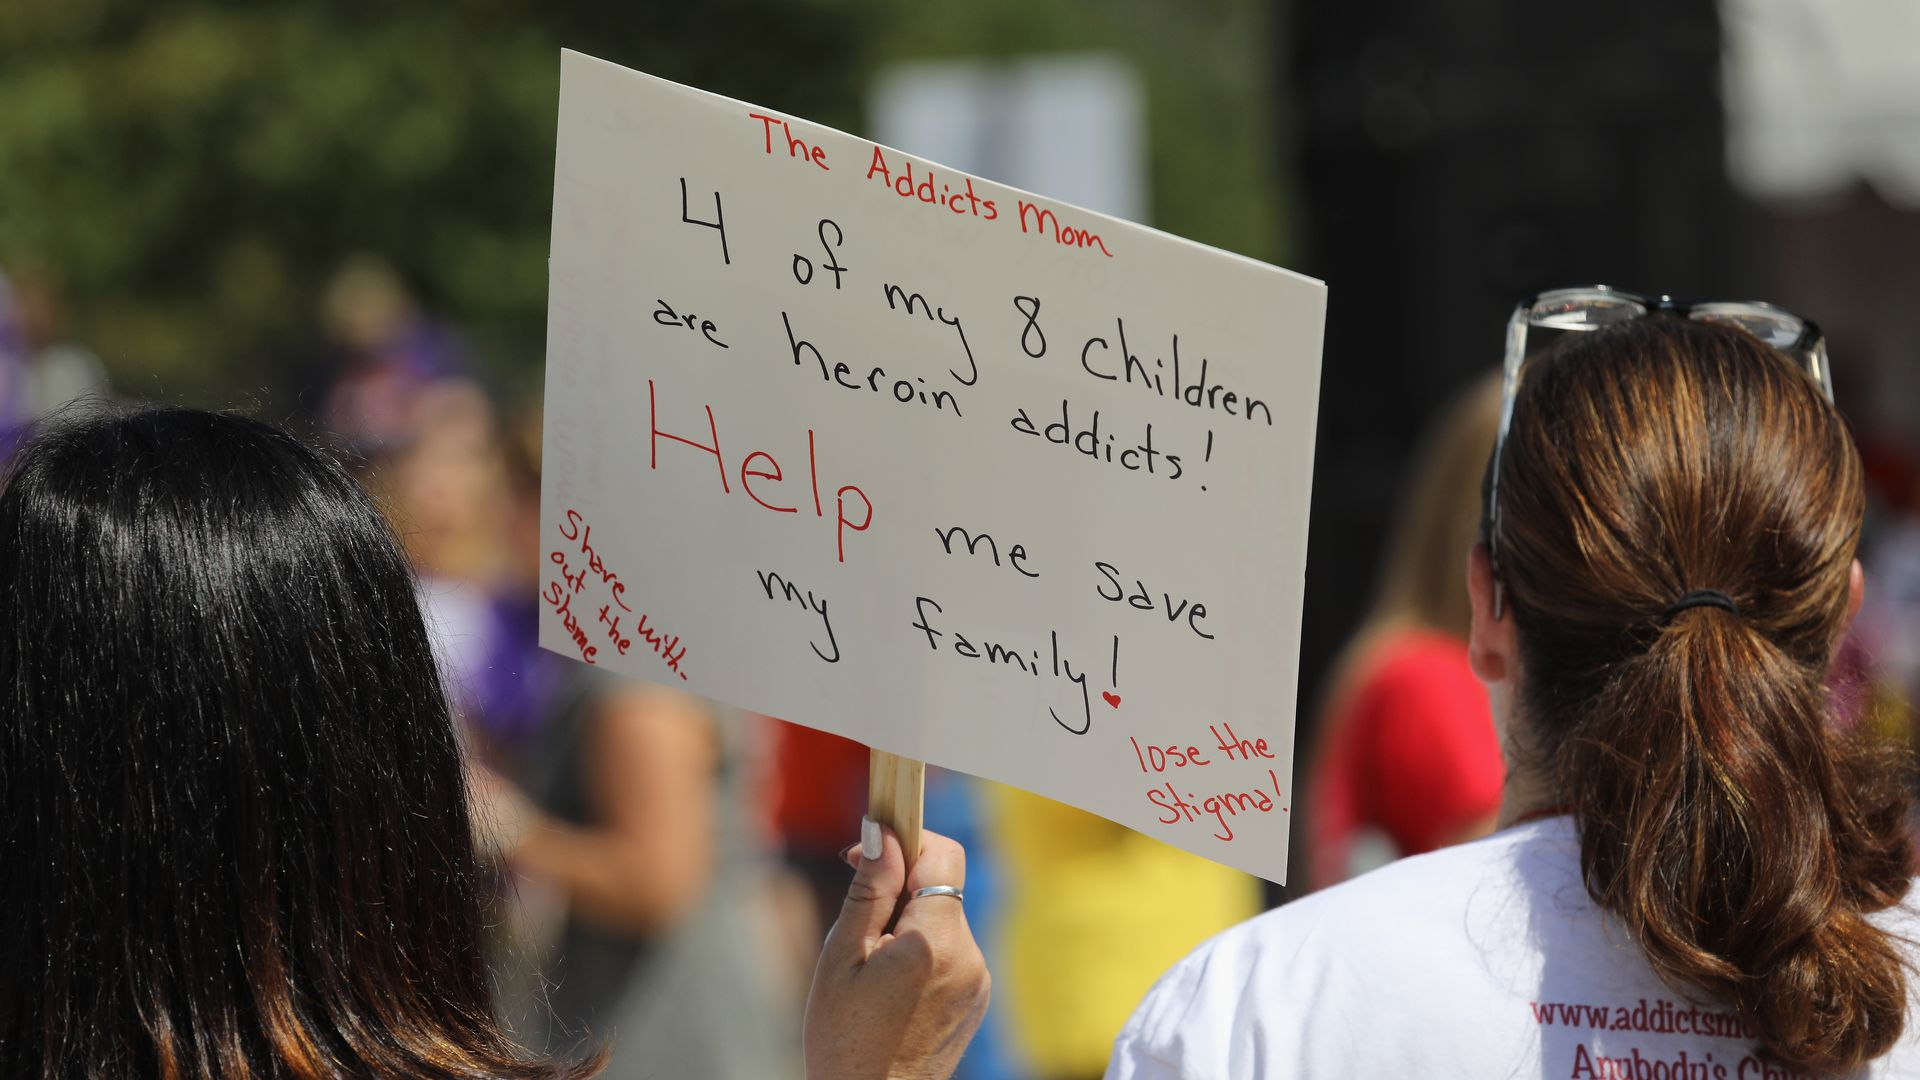 A woman attends a rally against the opioid epidemic